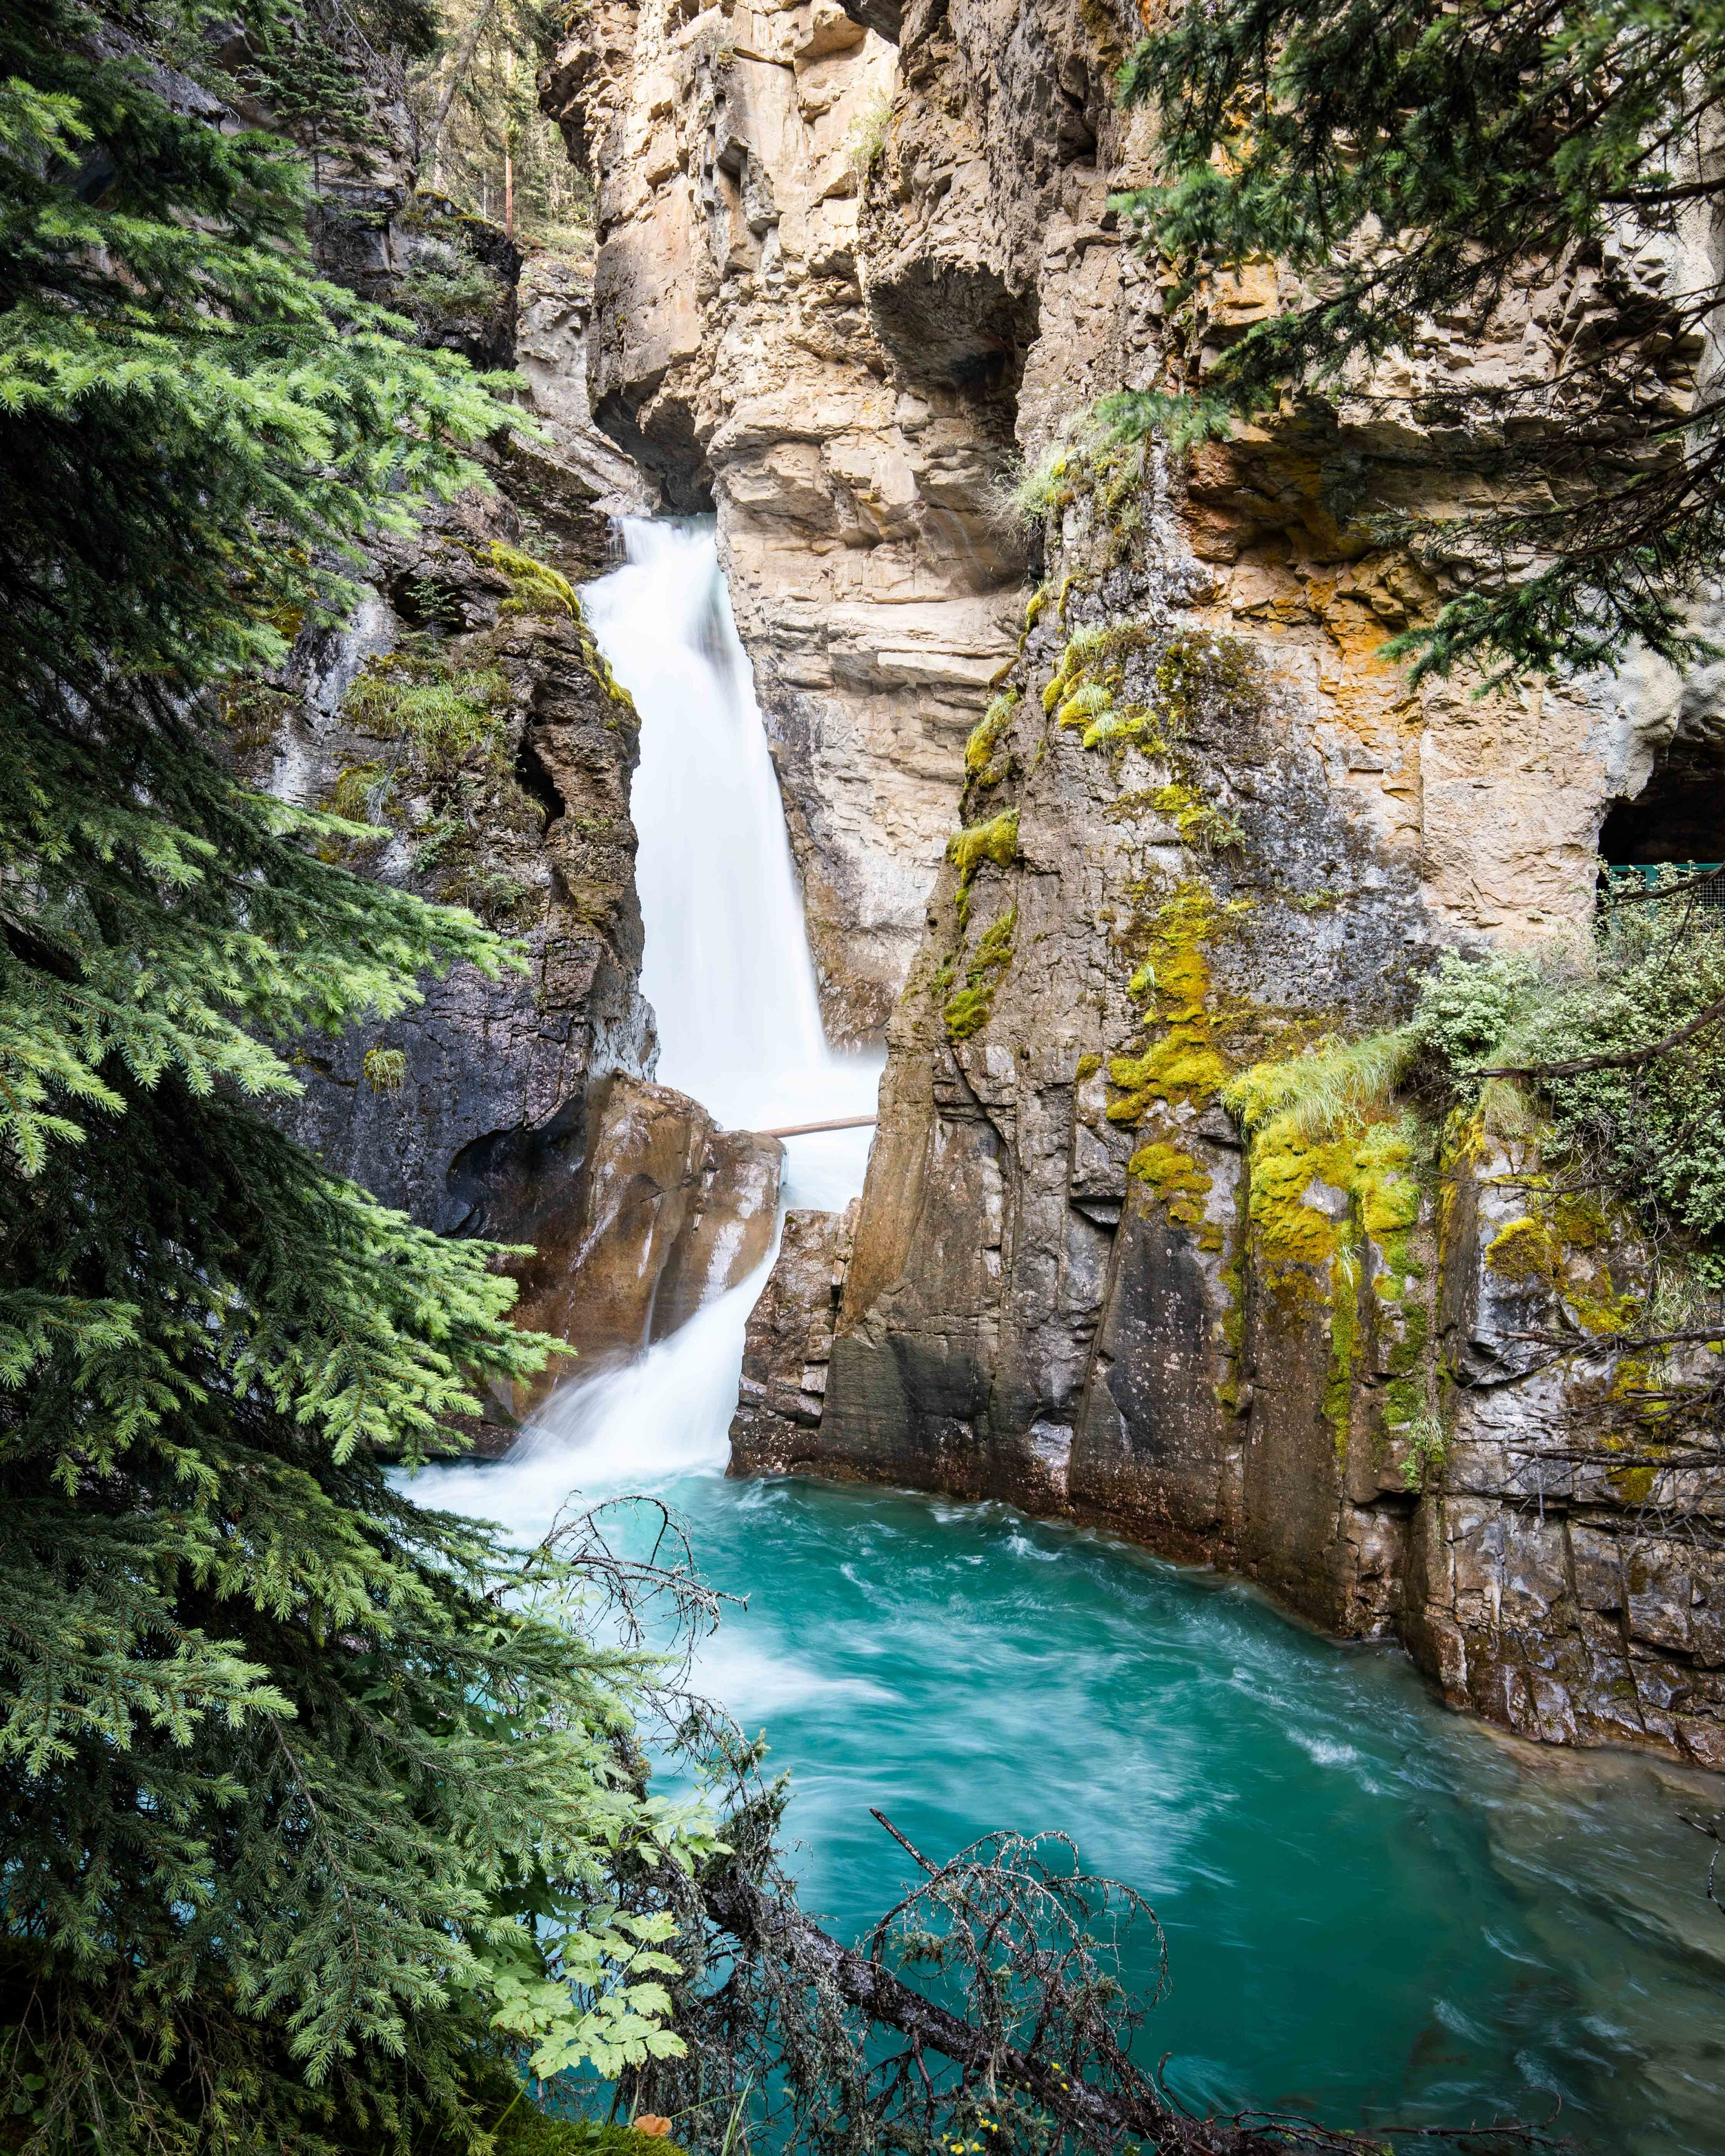 The Lower Falls at Johnston Canyon